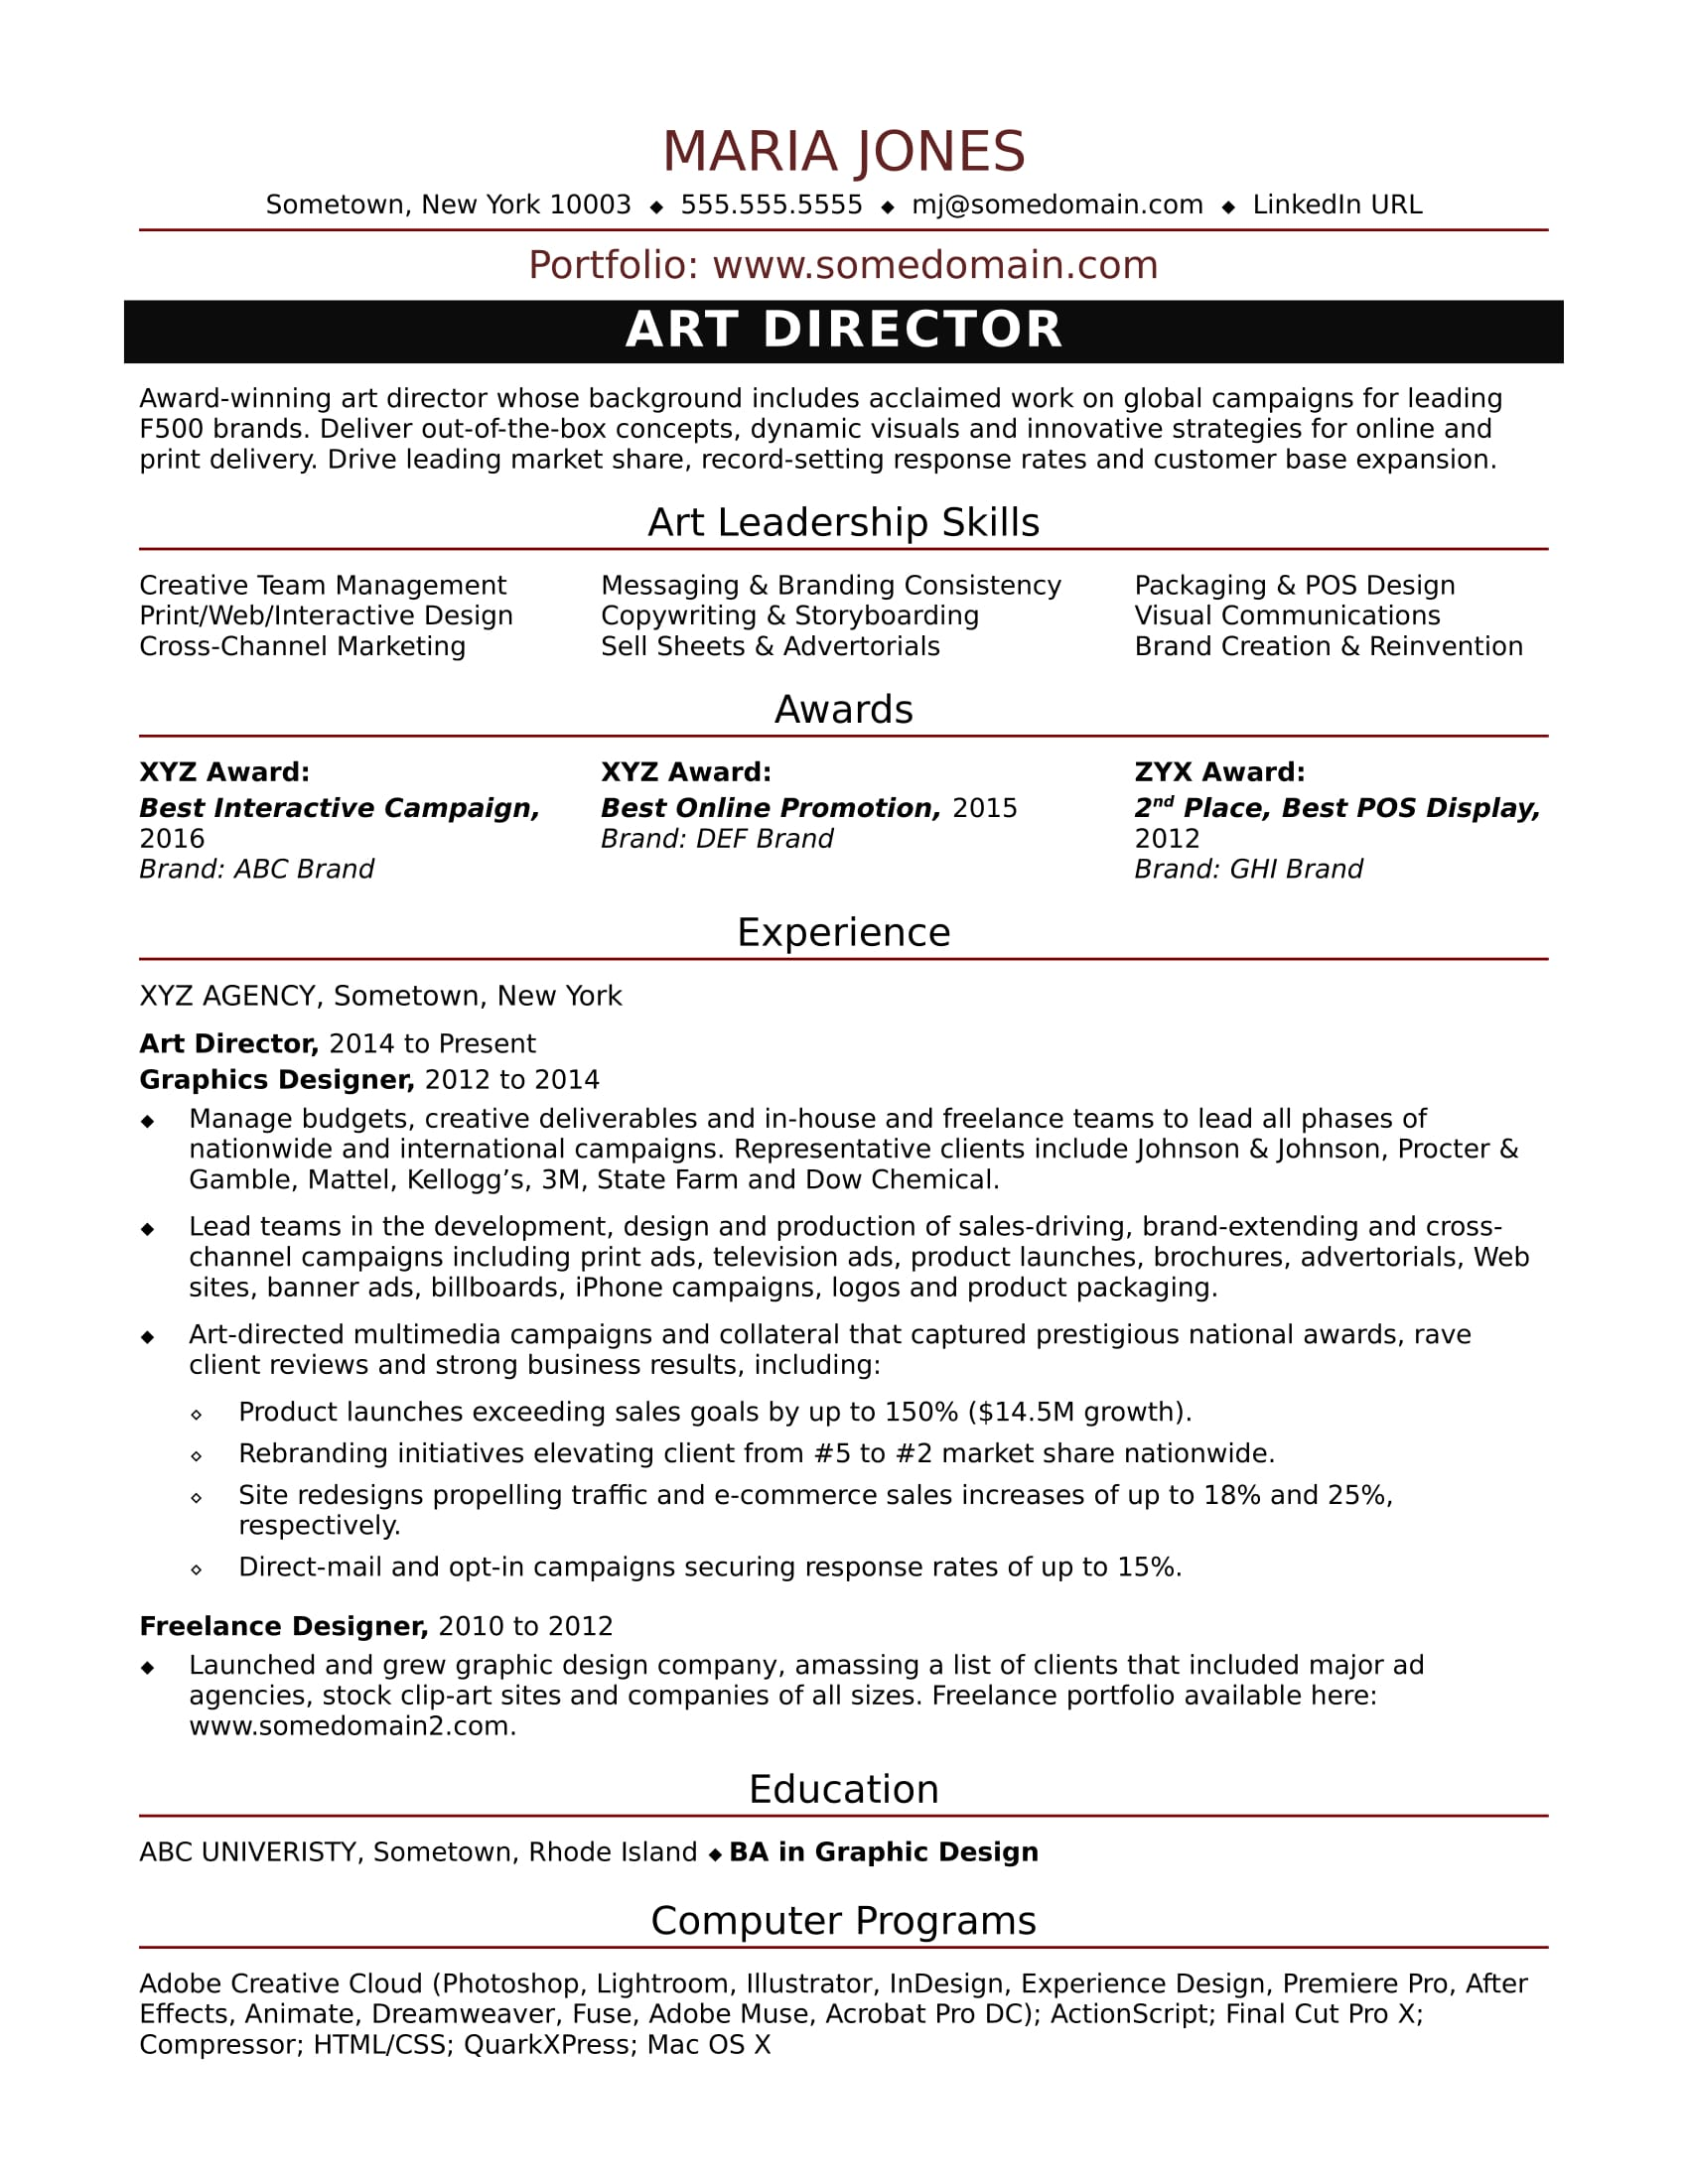 sample resume for a midlevel art director monster com